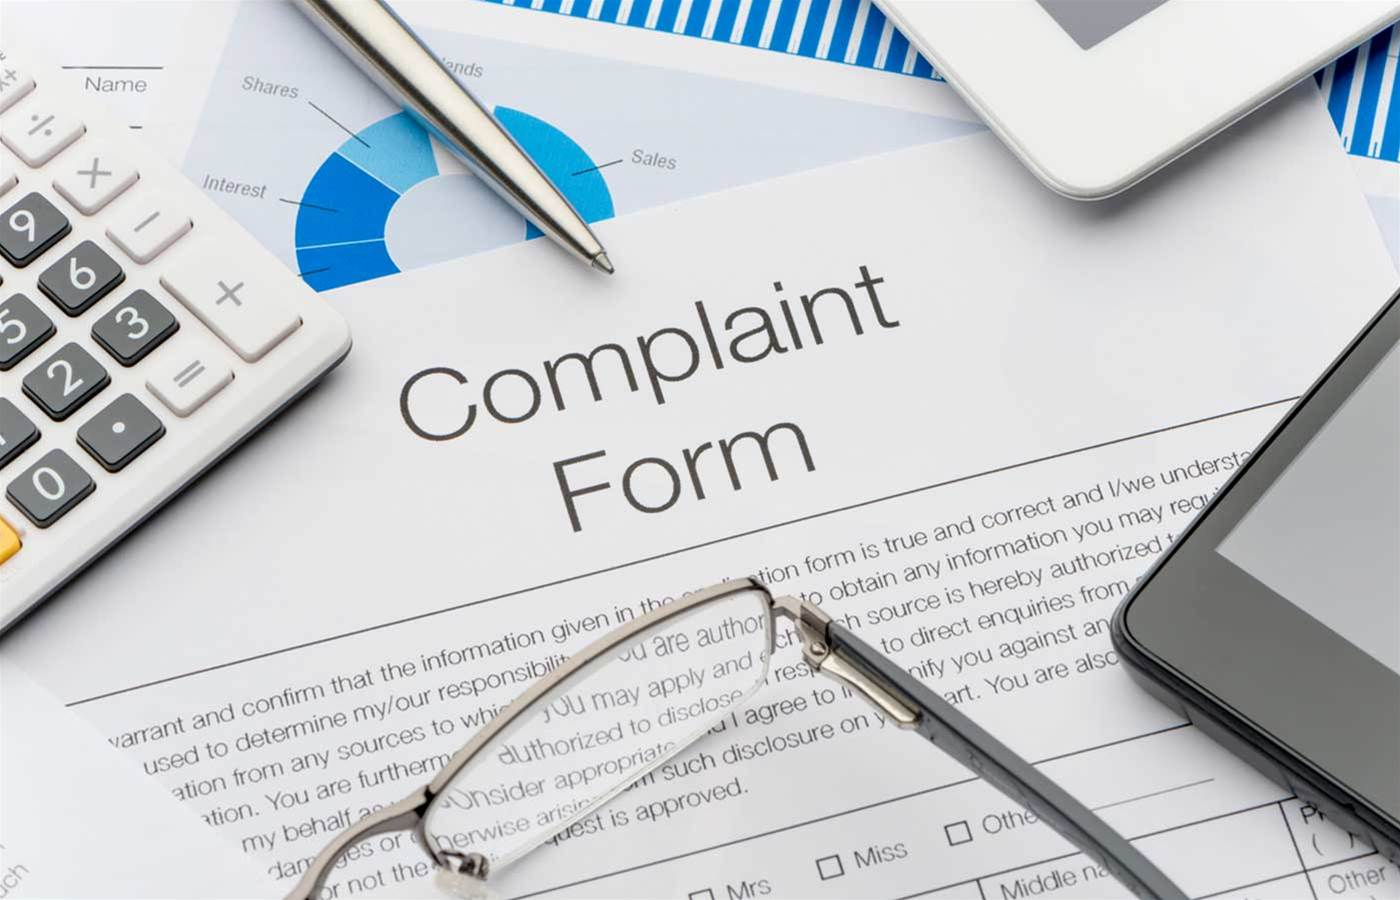 Online reseller tops NSW complaints register again